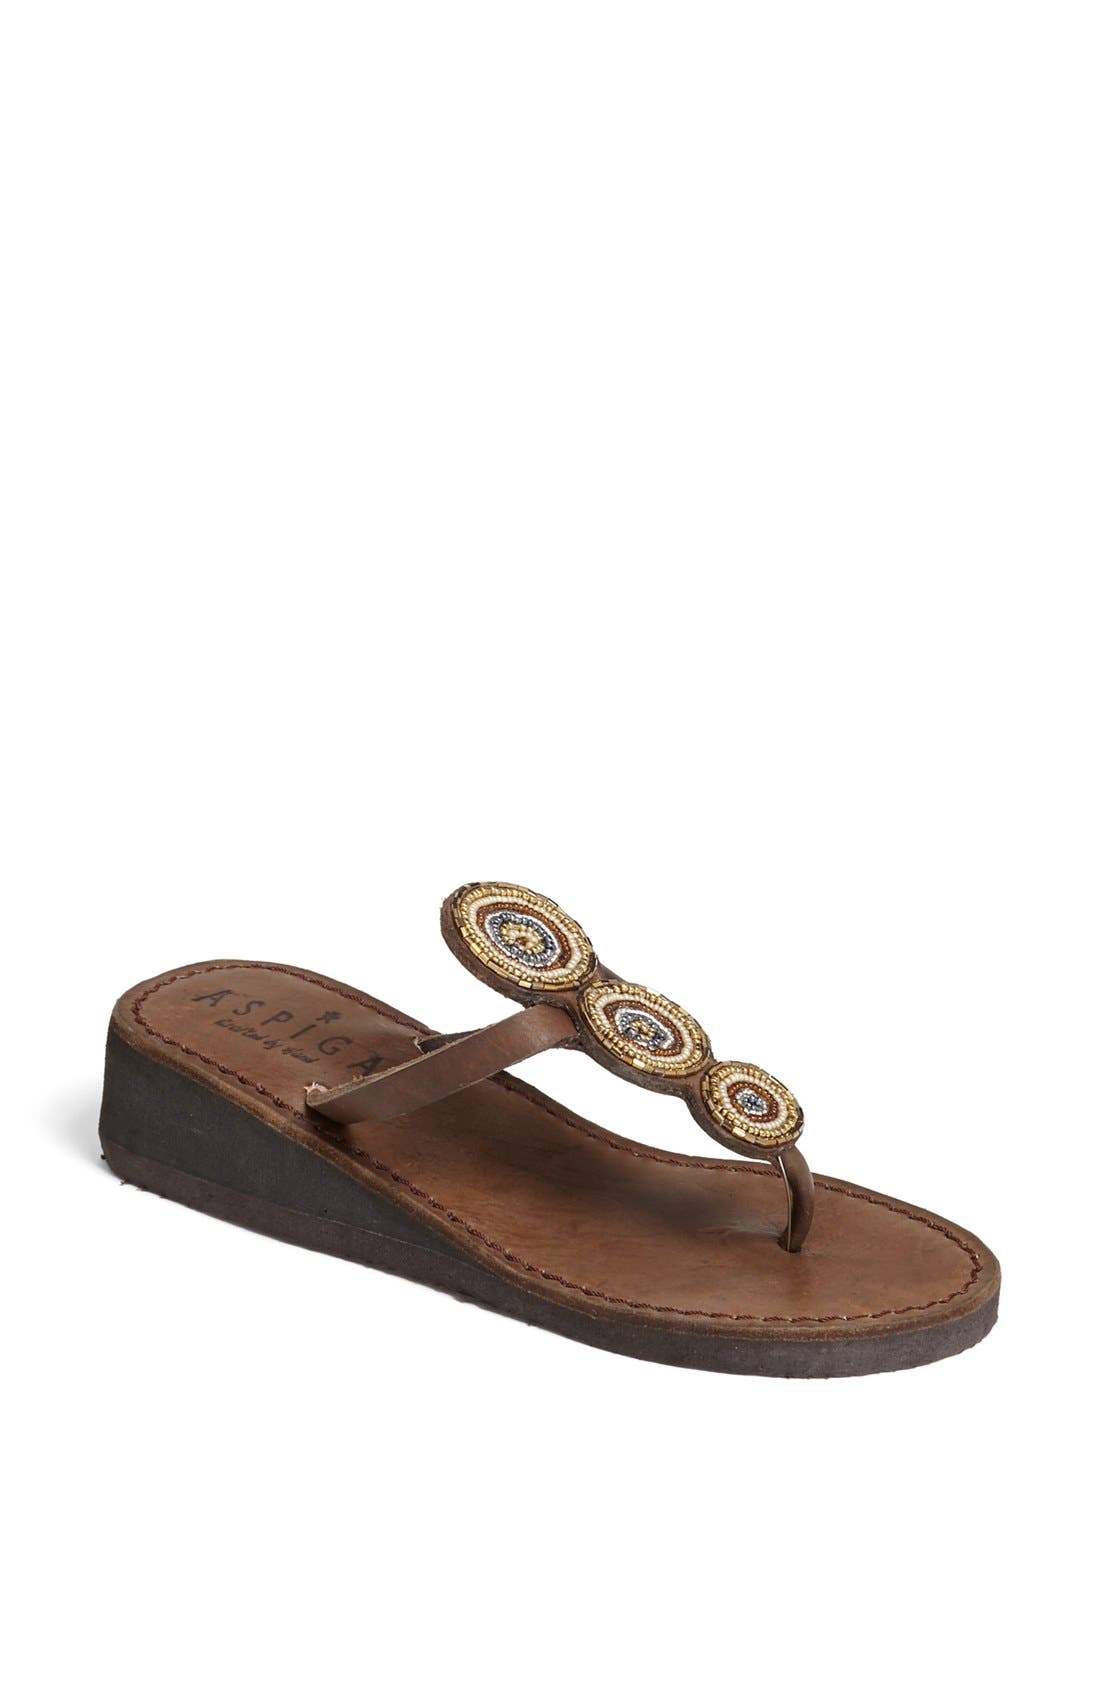 Alternate Image 1 Selected - Aspiga 'Neema' Sandal